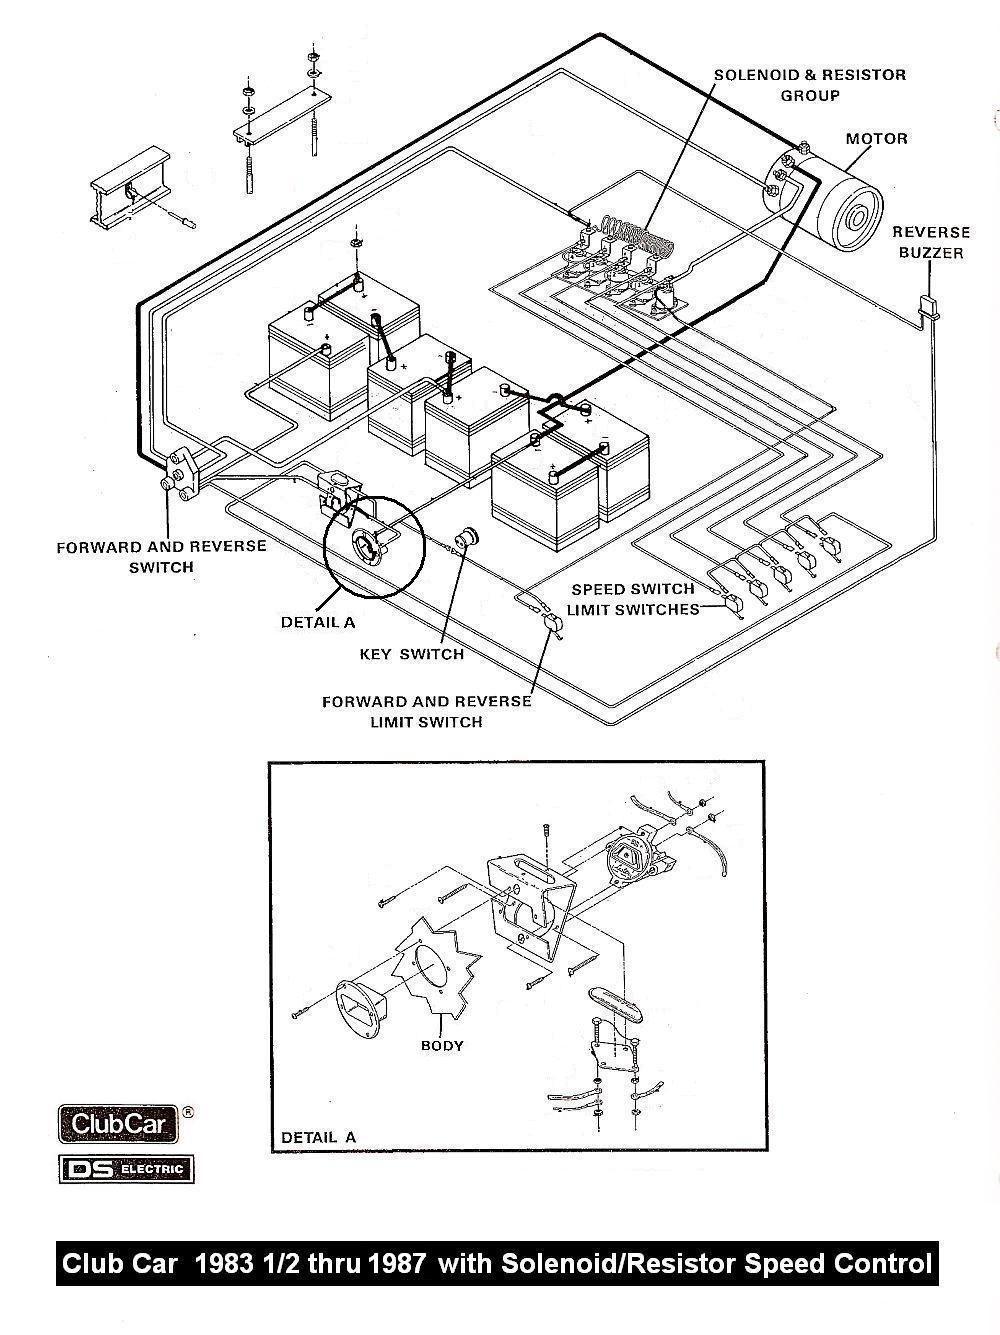 0e8d045370be7682b159825224221faa vintagegolfcartparts com *freezer & crock pot* pinterest gas club car golf cart wiring diagram at soozxer.org